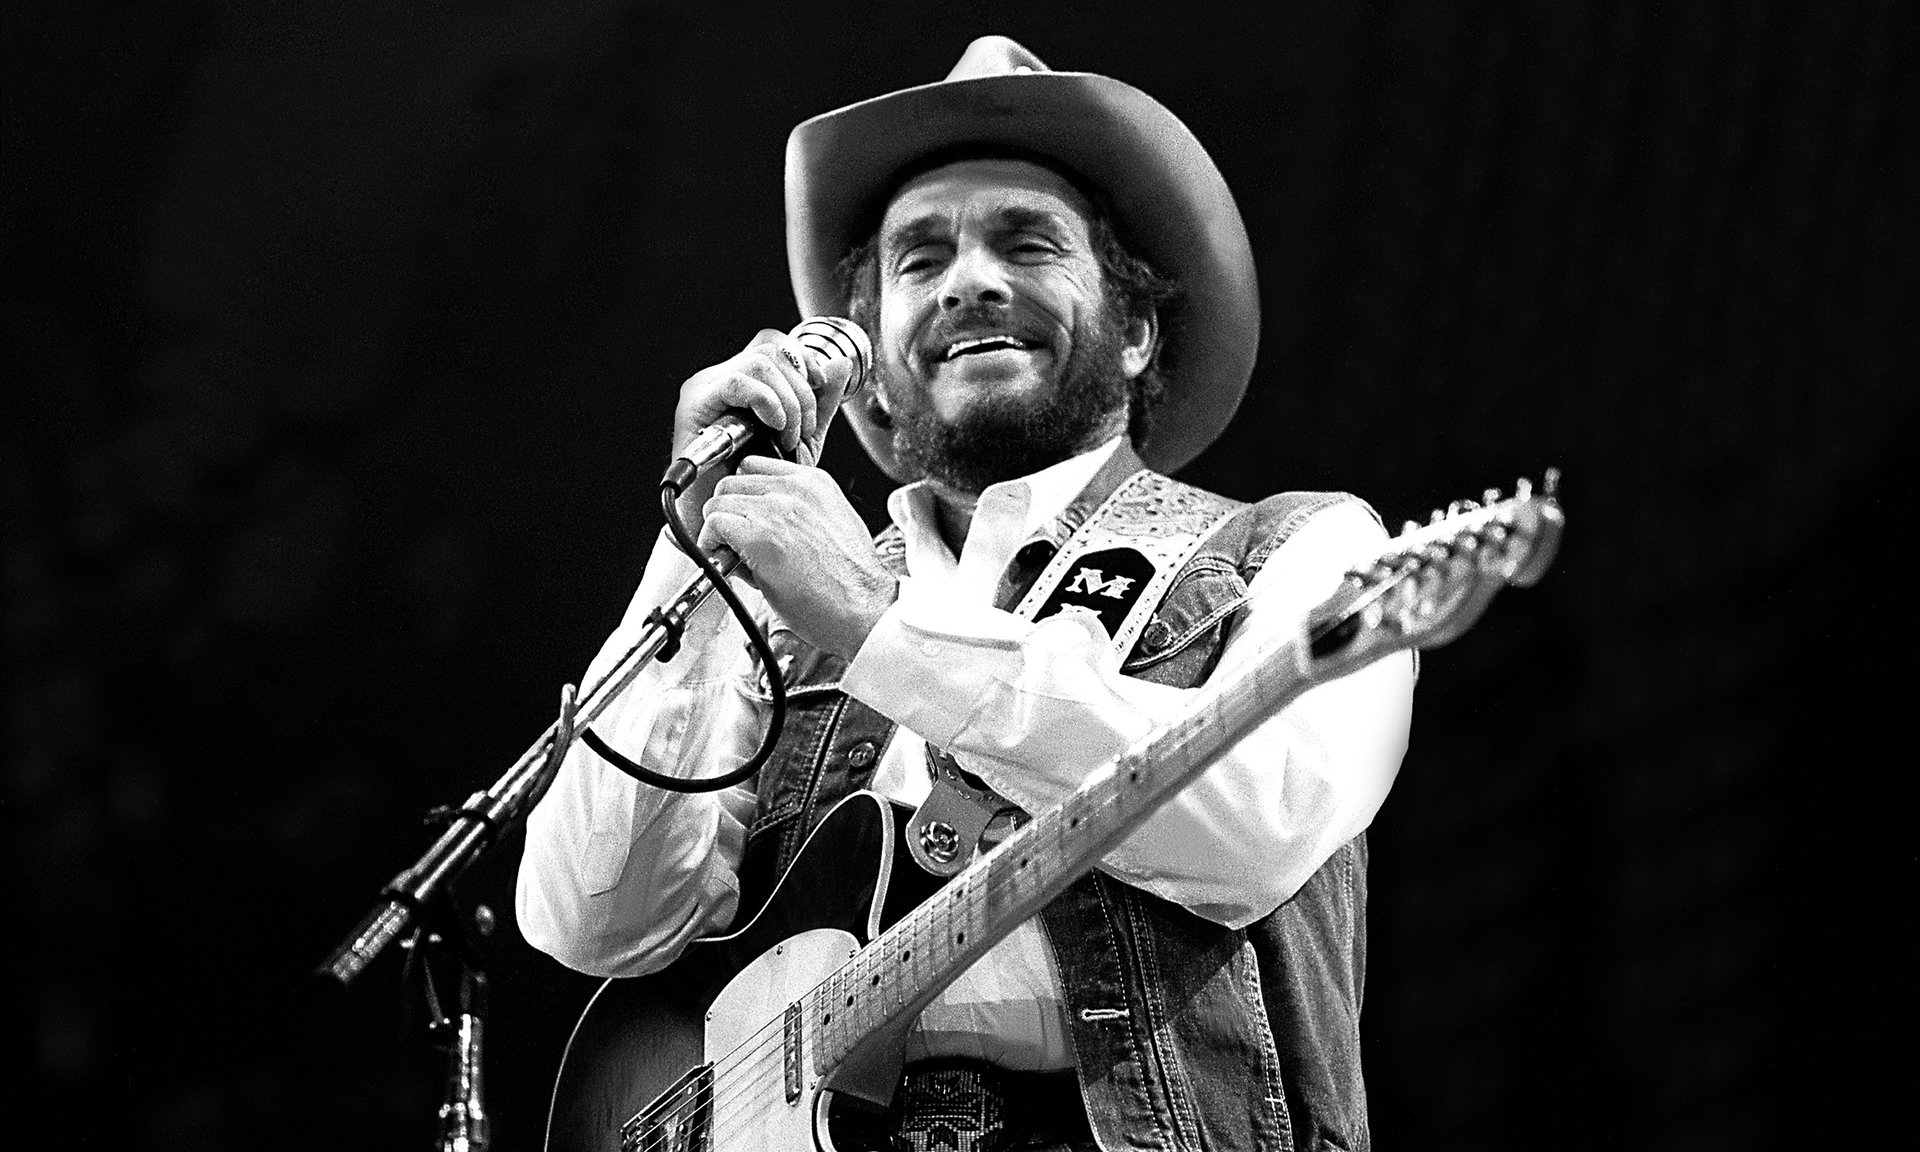 Merle Haggard: the country music legend's 10 greatest hits